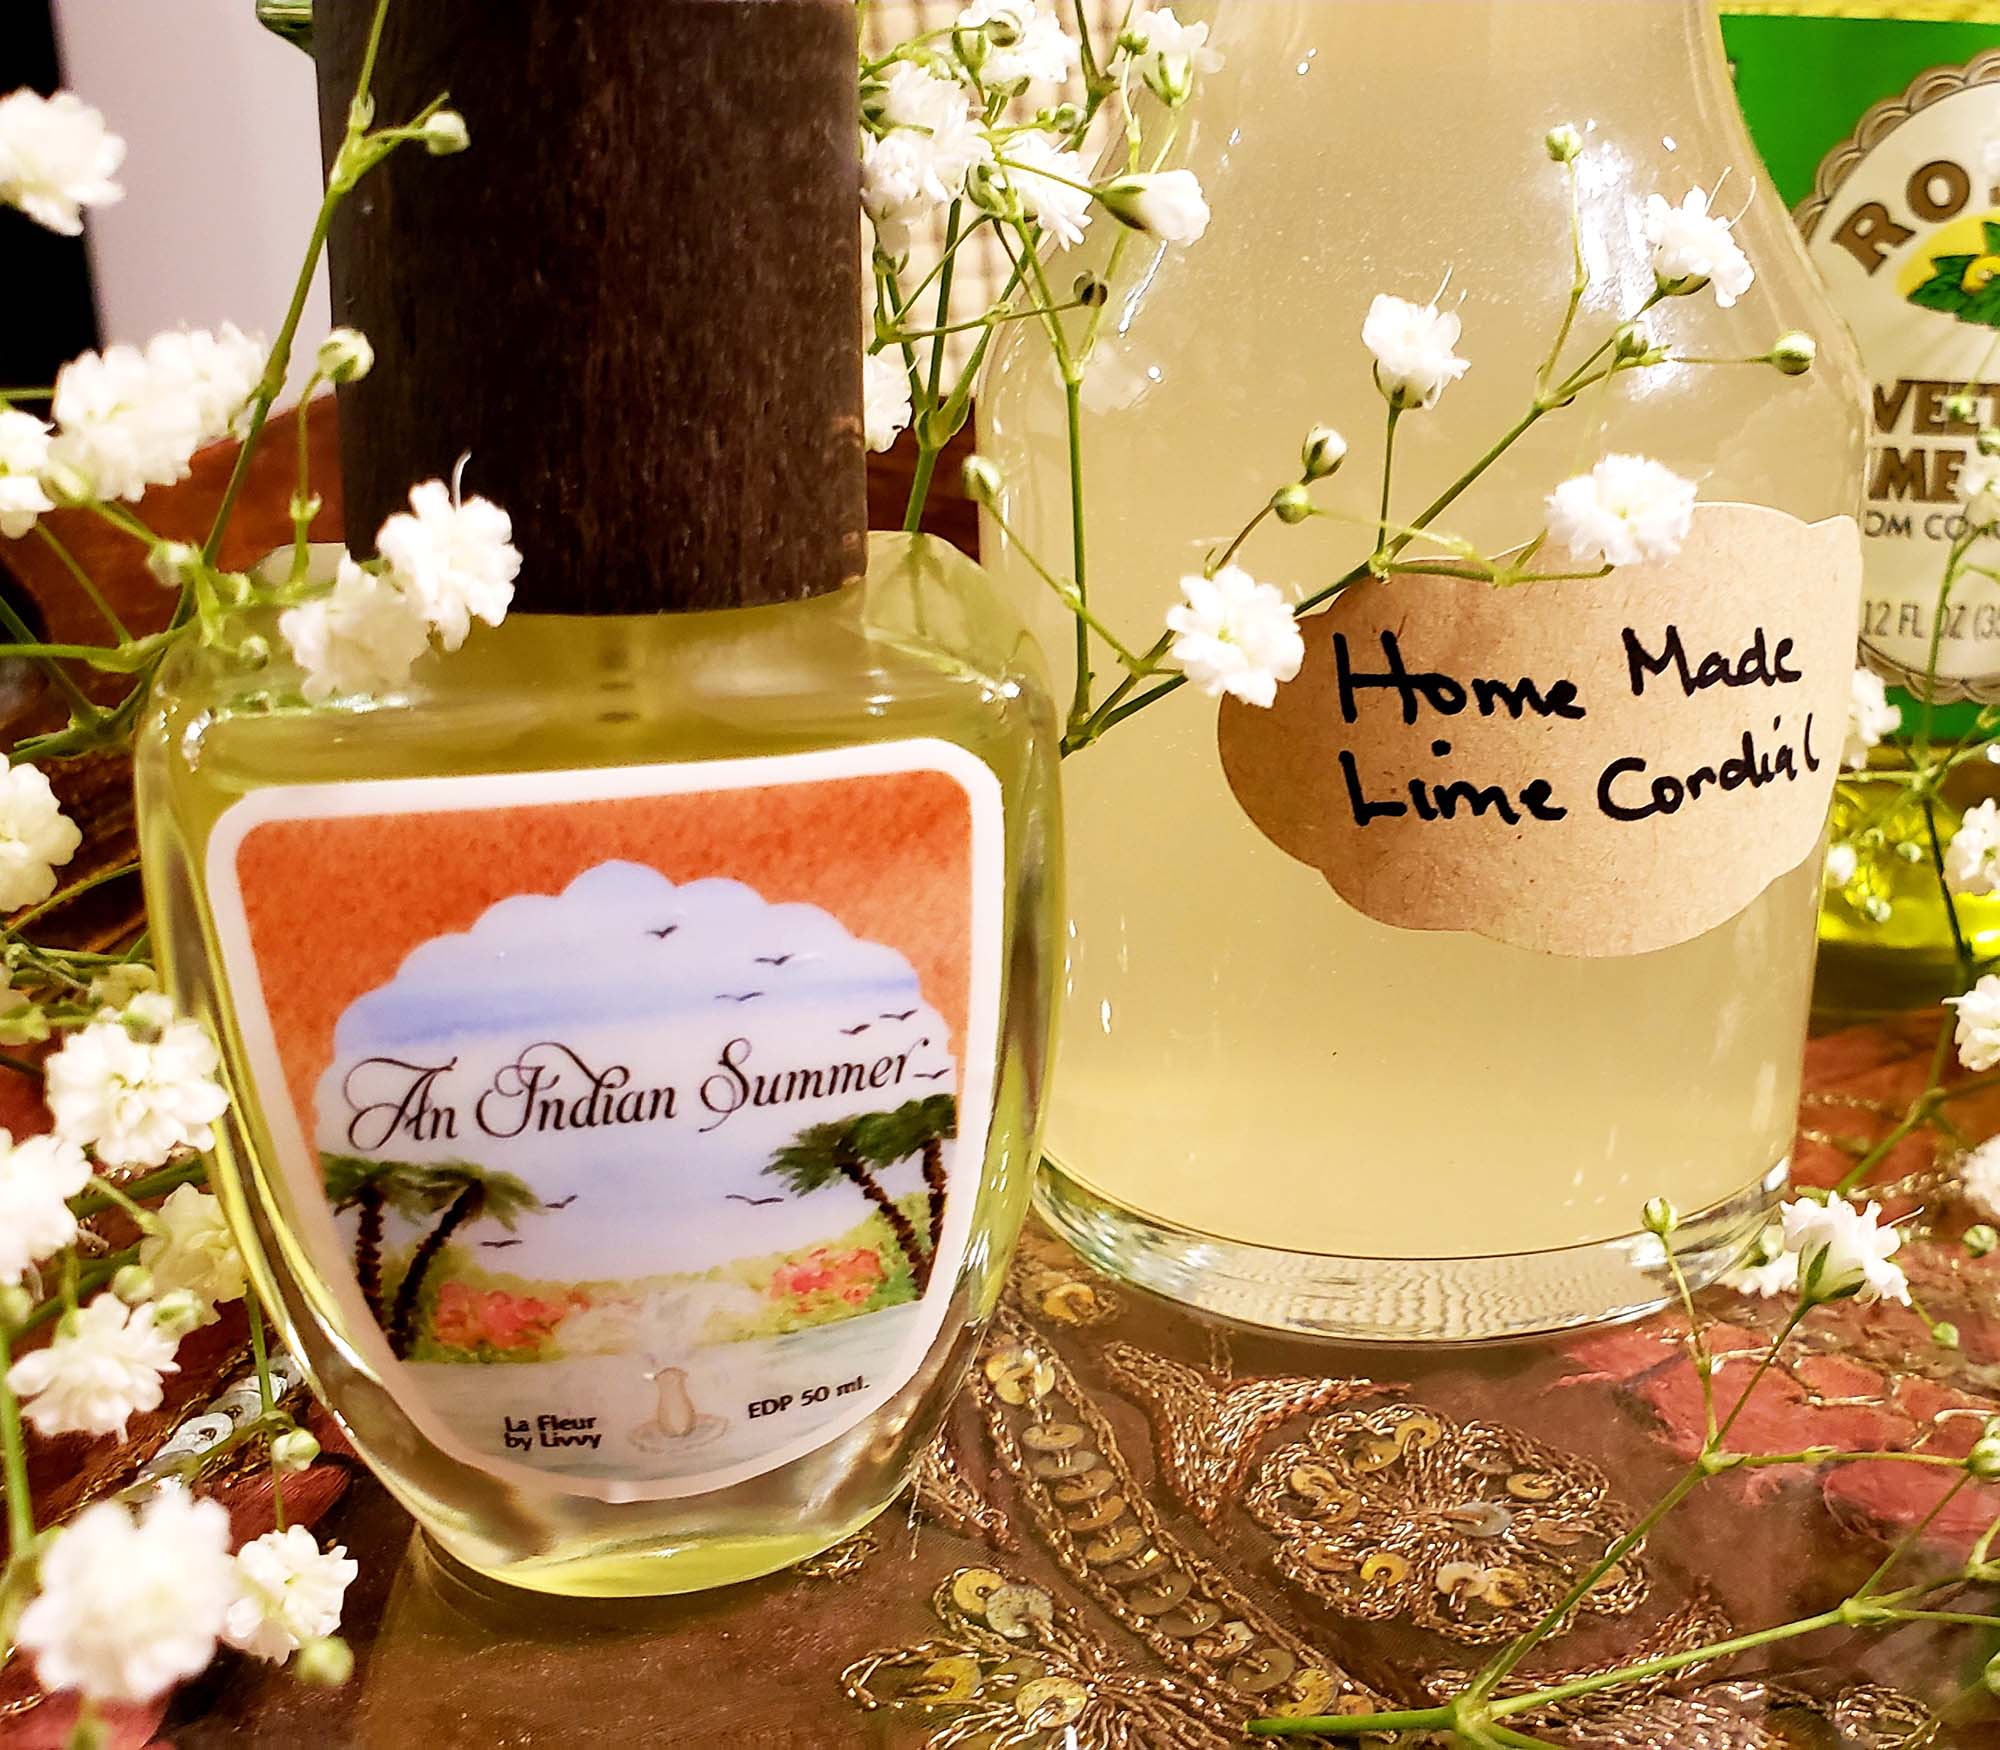 Indian Summer Perfume next to Lime Cordial.